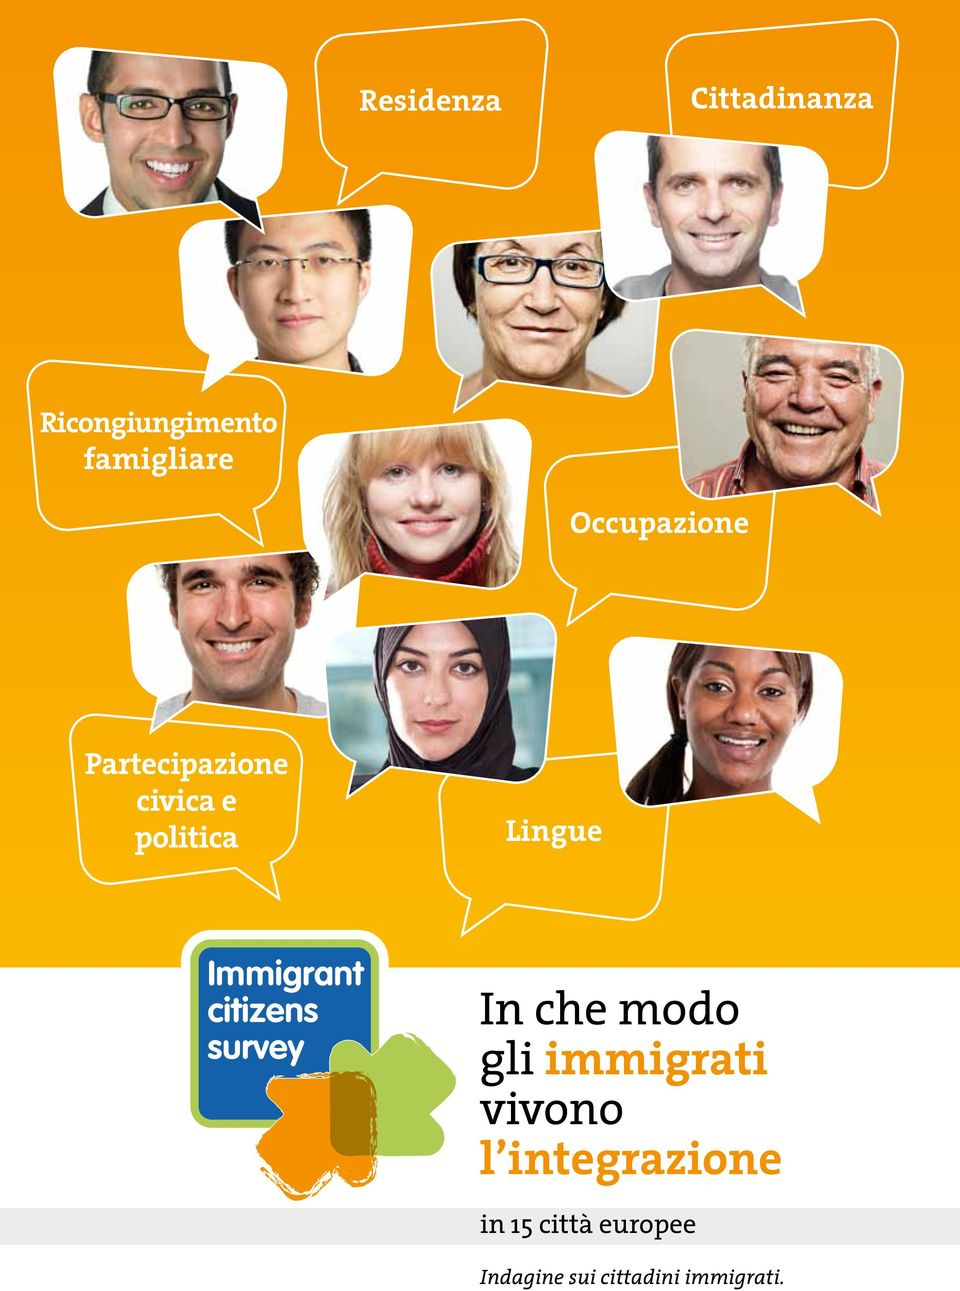 Immigrant citizens survey In che modo gli immigrati